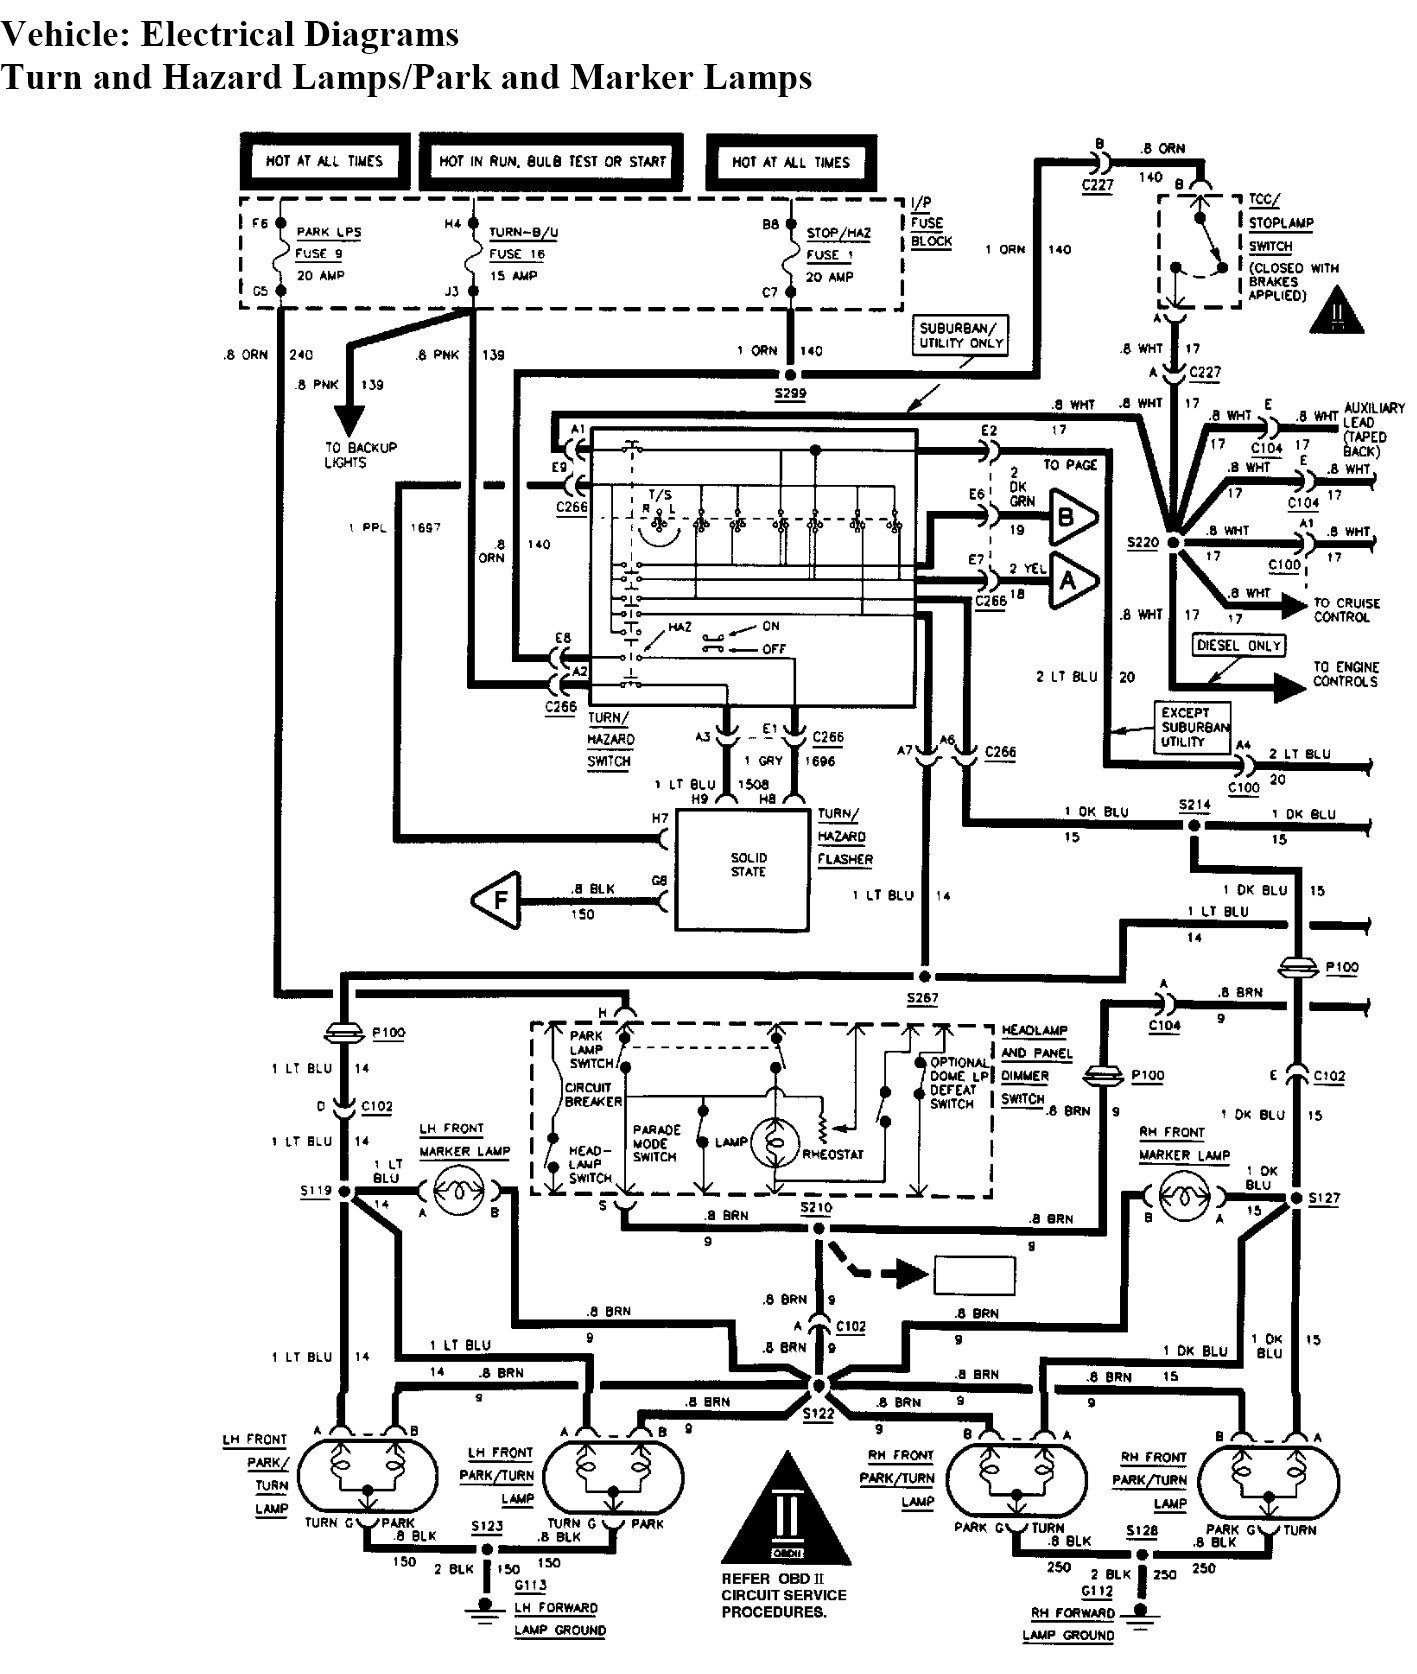 Wfco 8955 Converter Wiring Diagram from mainetreasurechest.com